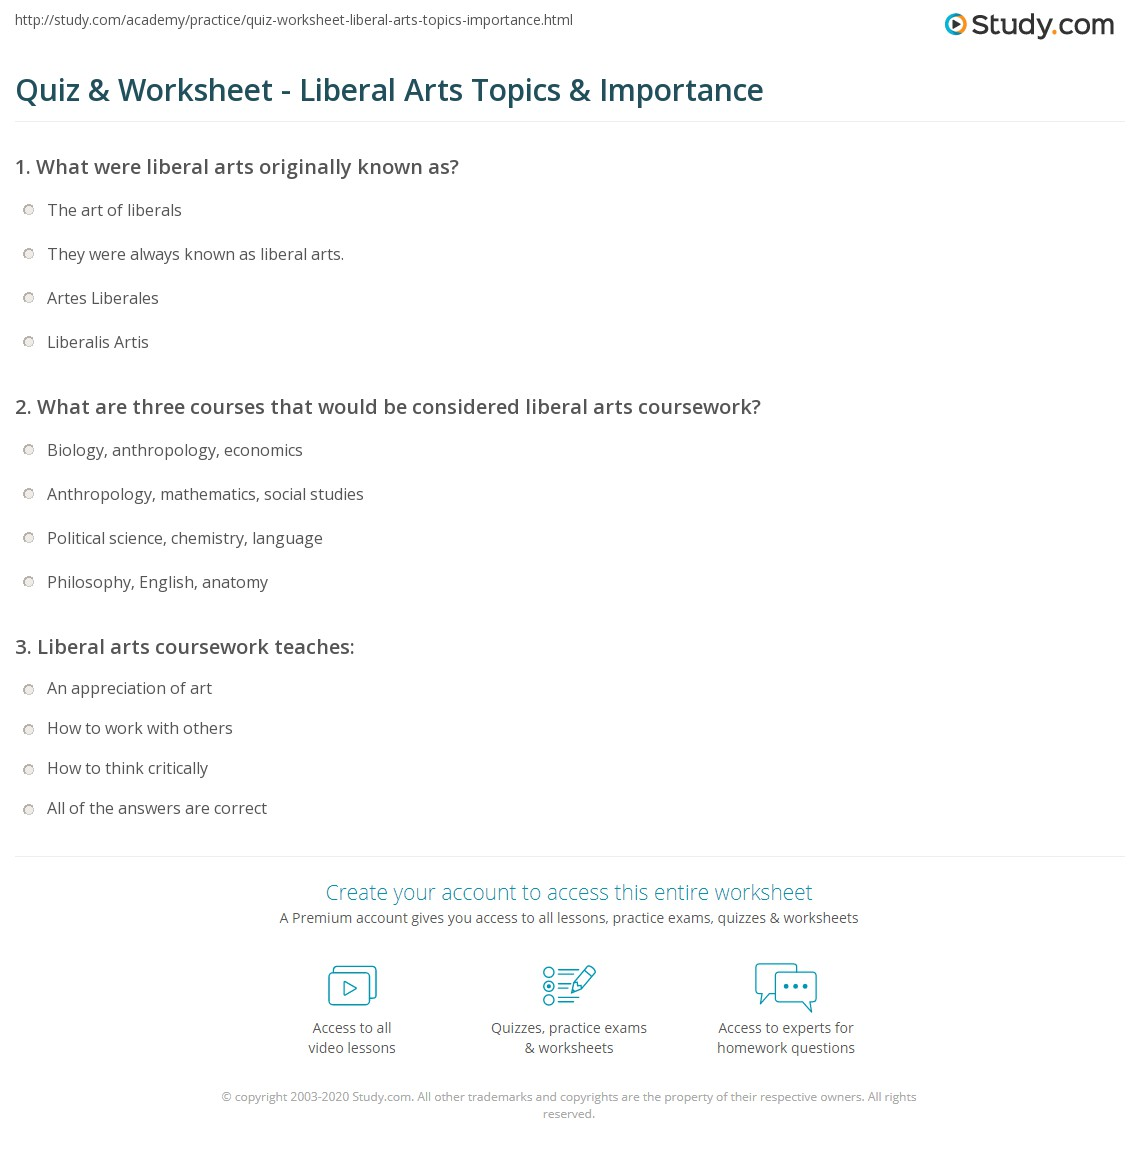 quiz & worksheet - liberal arts topics & importance | study